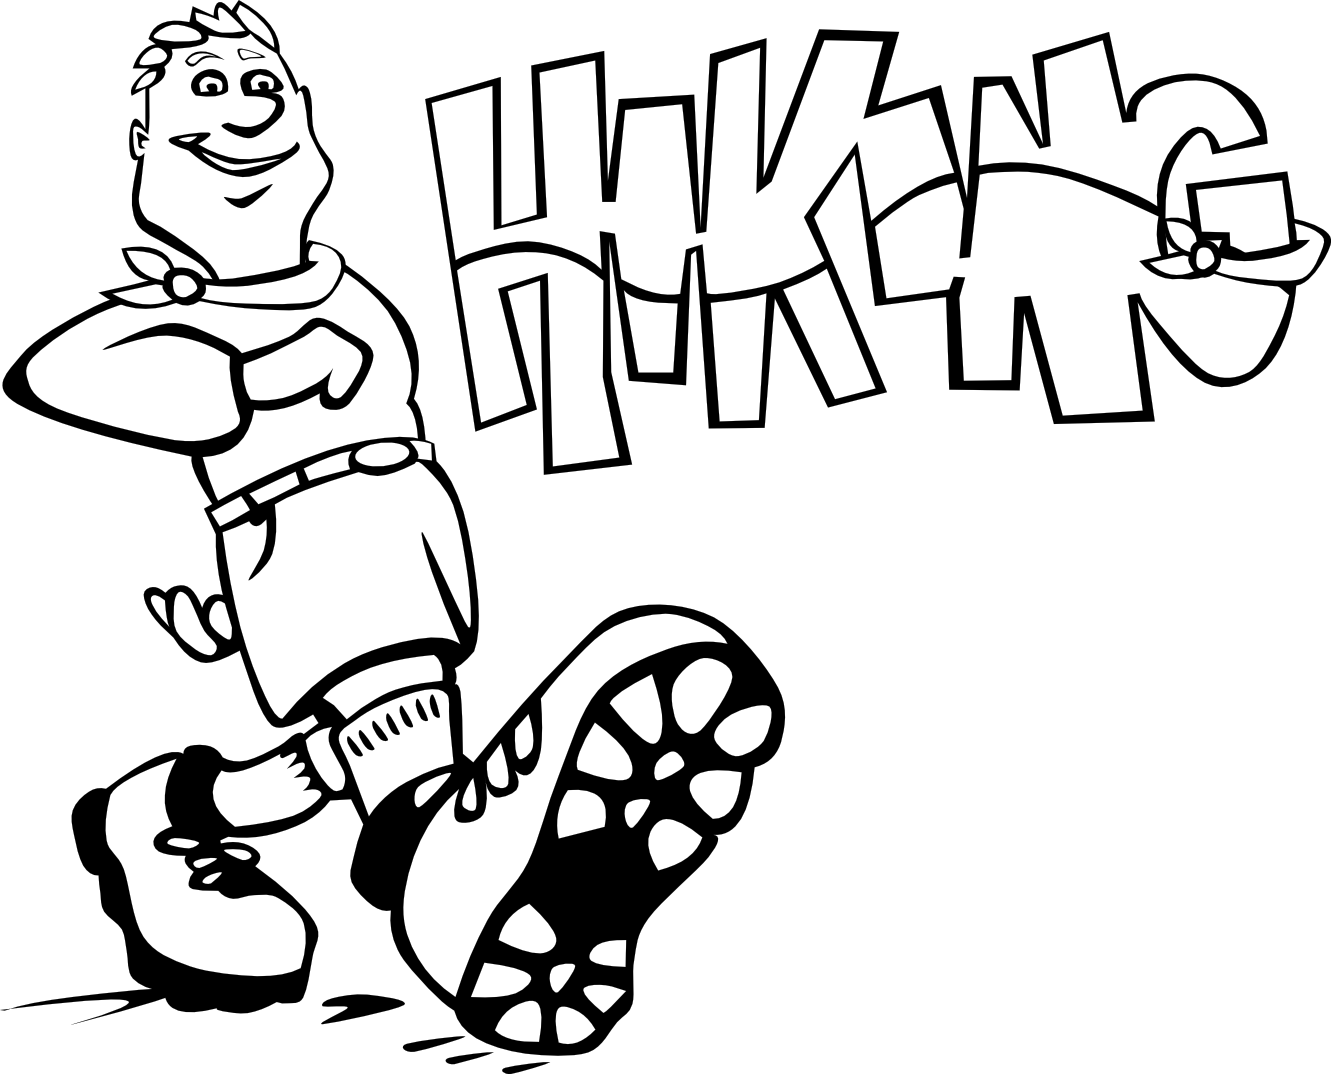 clip free download Hiking clipart black and white. Pictures clip art cliparts